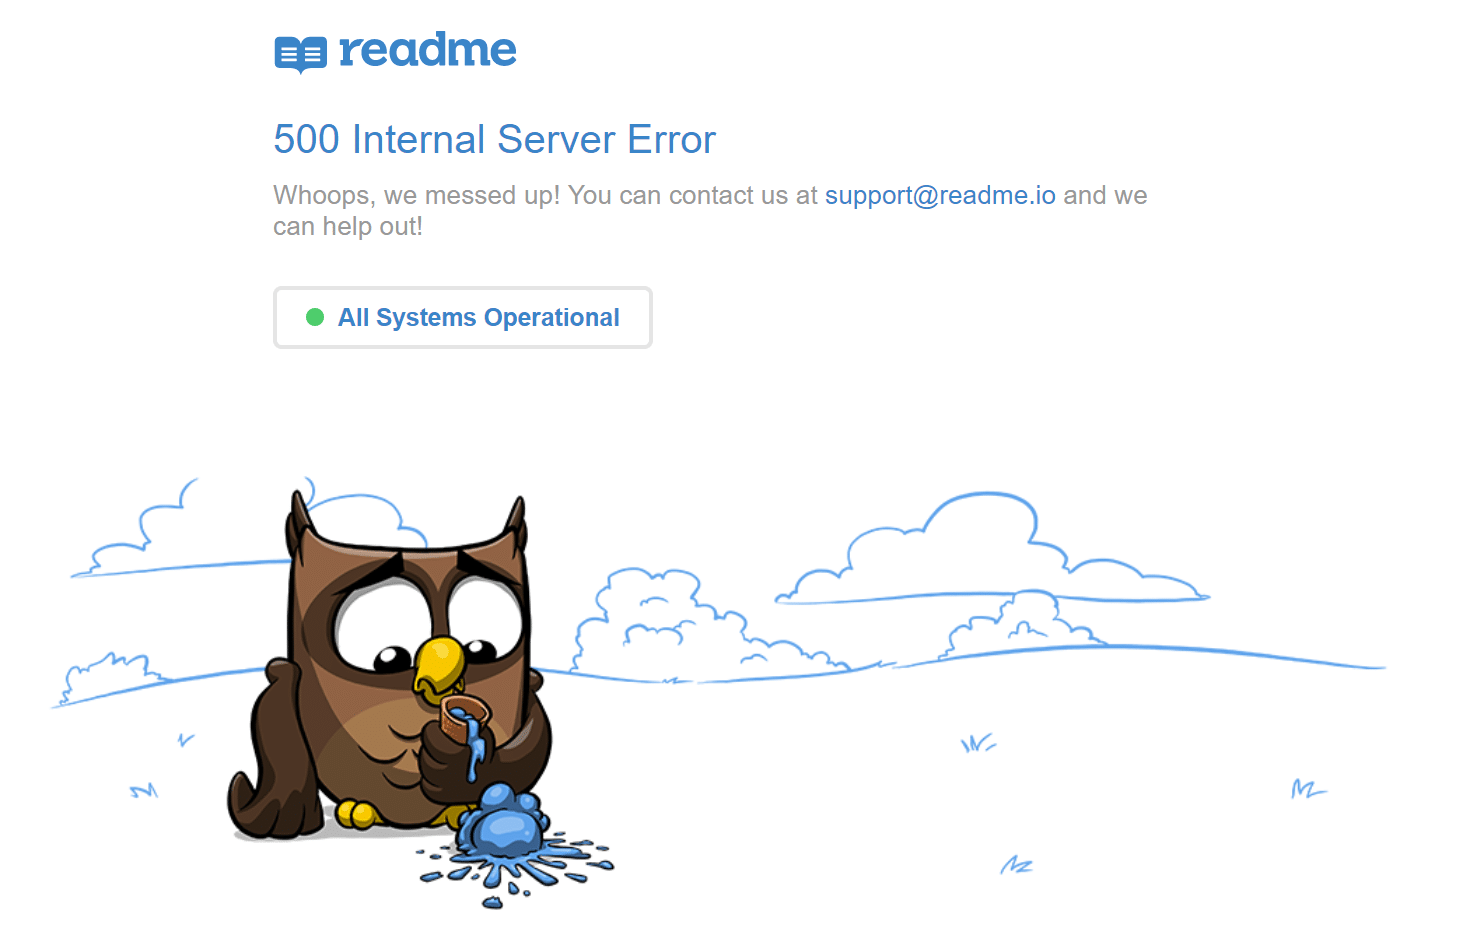 readme 500 internal server error